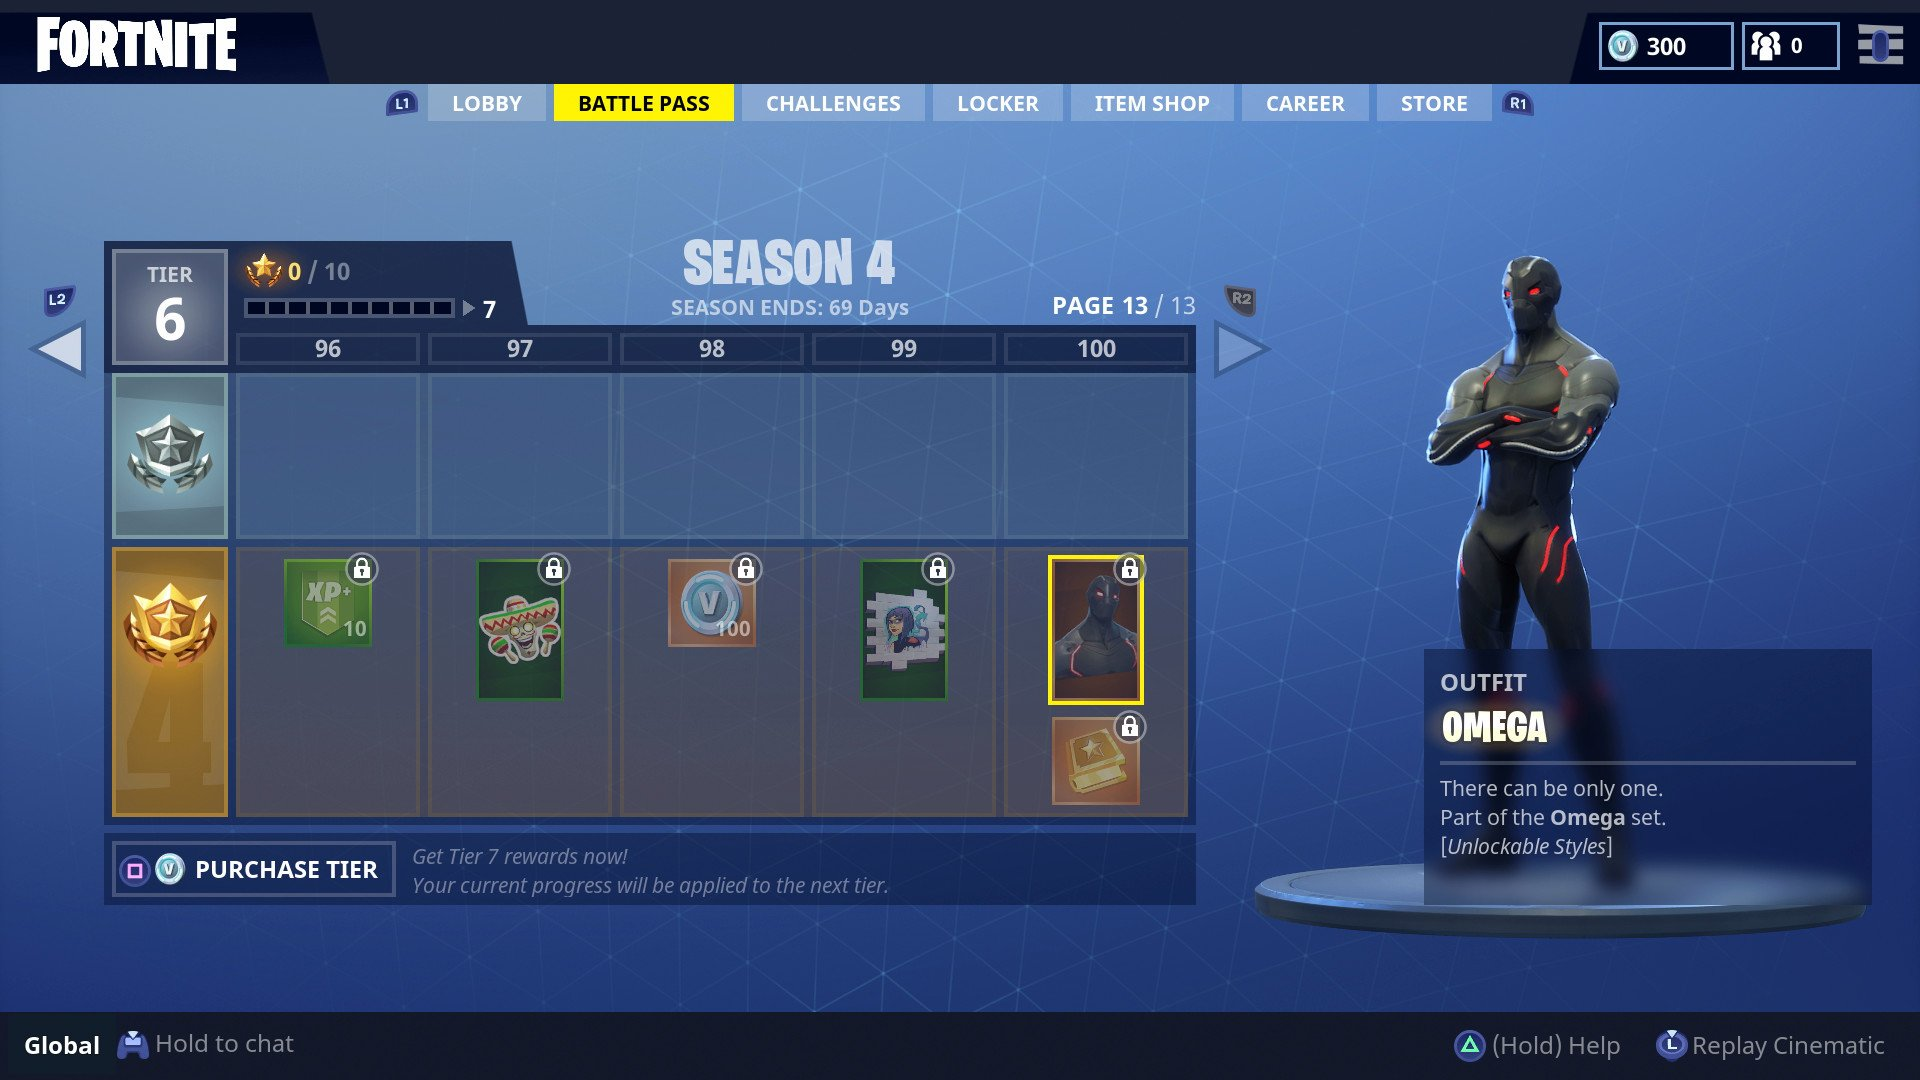 How to prepare for Fortnite Season 5   Android Central The first thing you ll want to do is complete as much of the Fortnite  Season 4 Battle Pass as you can because once Season 5 hits you ll no longer  be able to